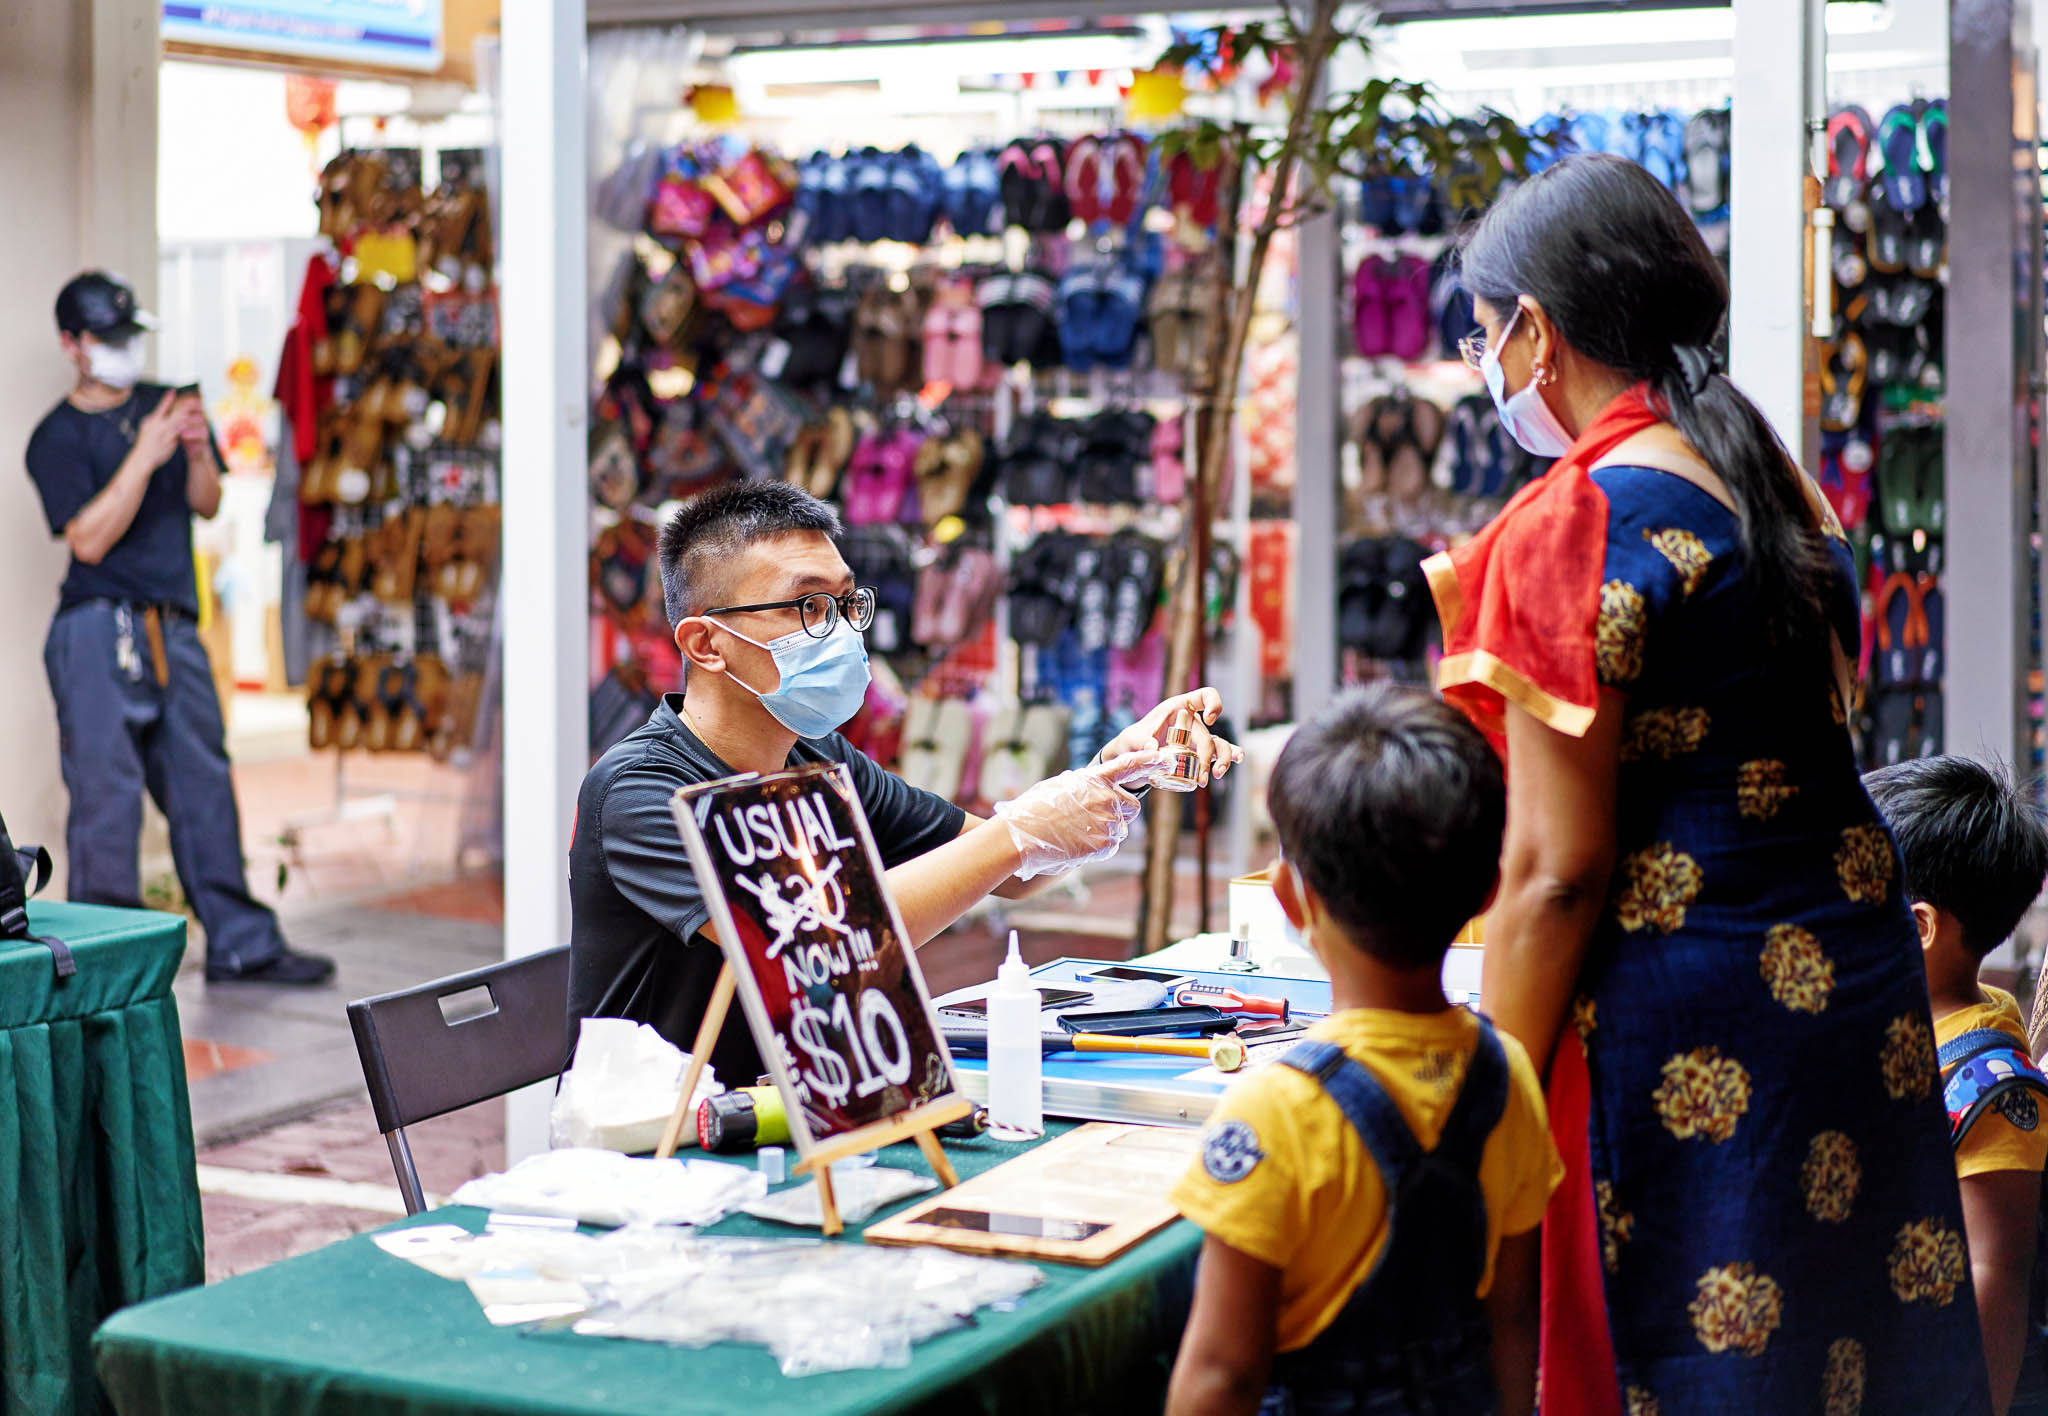 A mobile shop keeper fixing screens for mobile phones attending a customer, Chinatown, Singapore